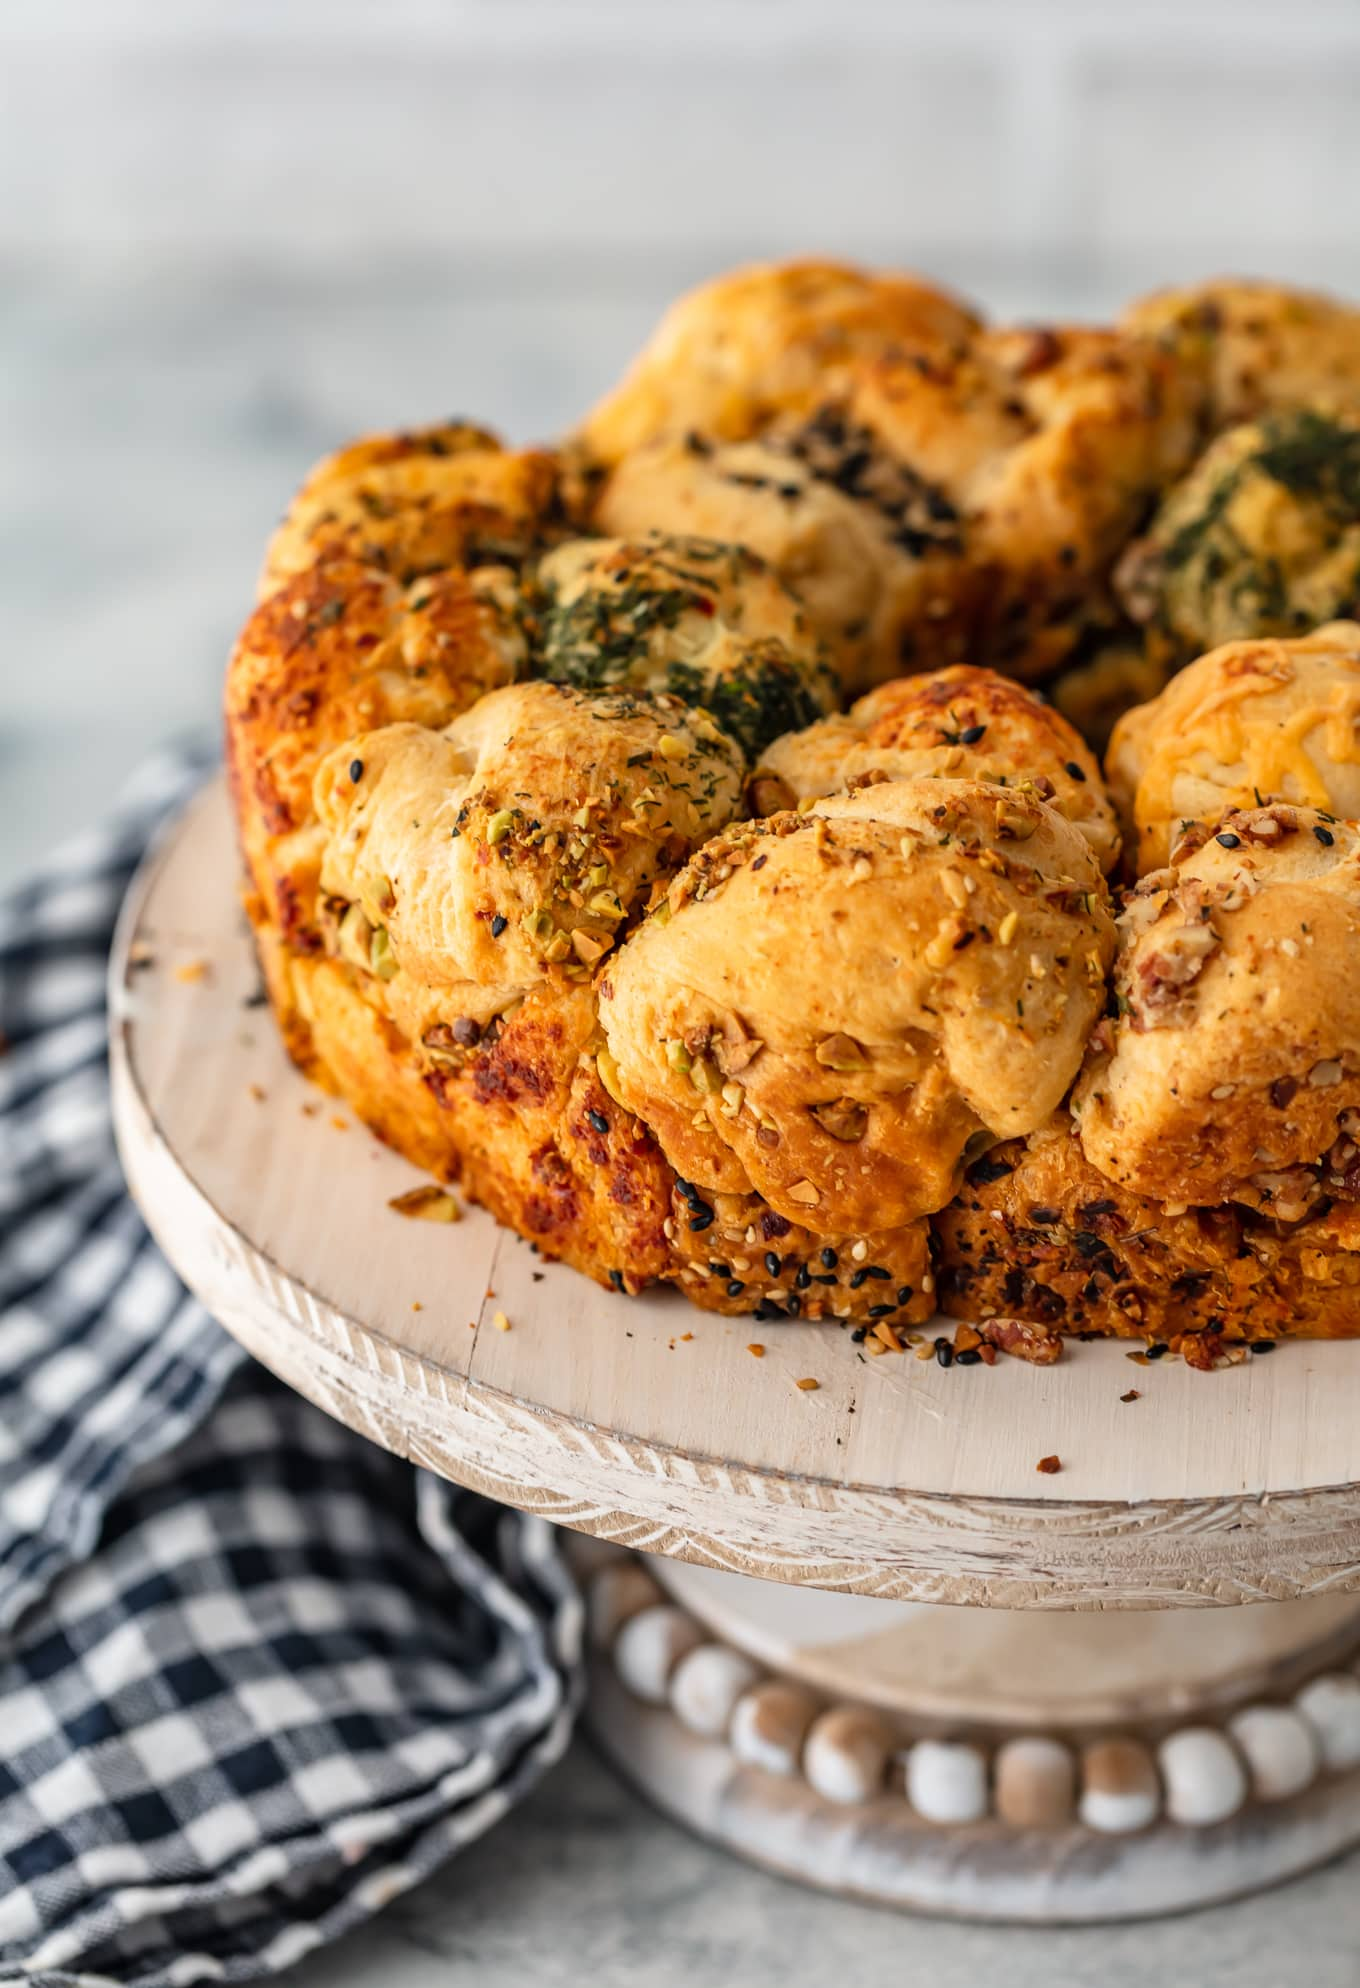 This Savory Monkey Bread recipe is flaky, flavorful and fun to eat. For an appetizer or a meal, it's a real crowd pleaser!